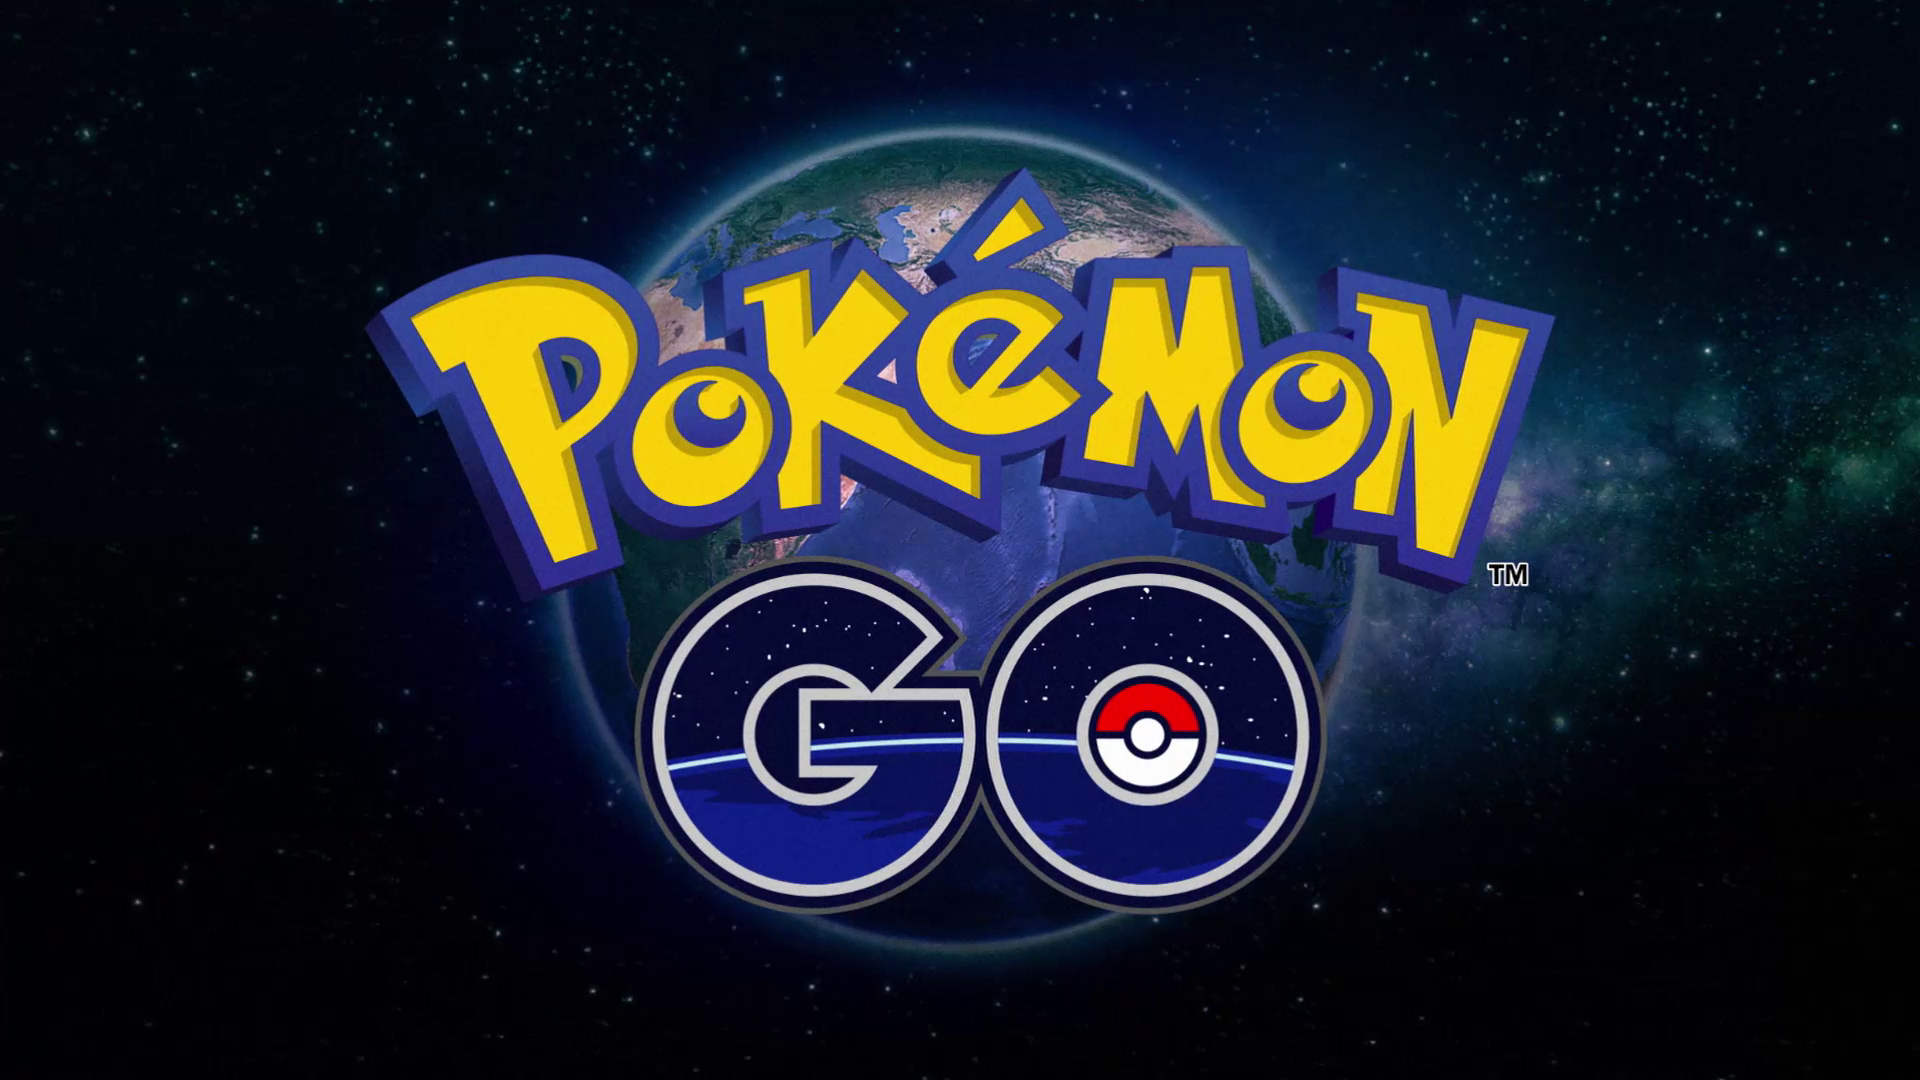 Video Game - Pokemon GO  Wallpaper